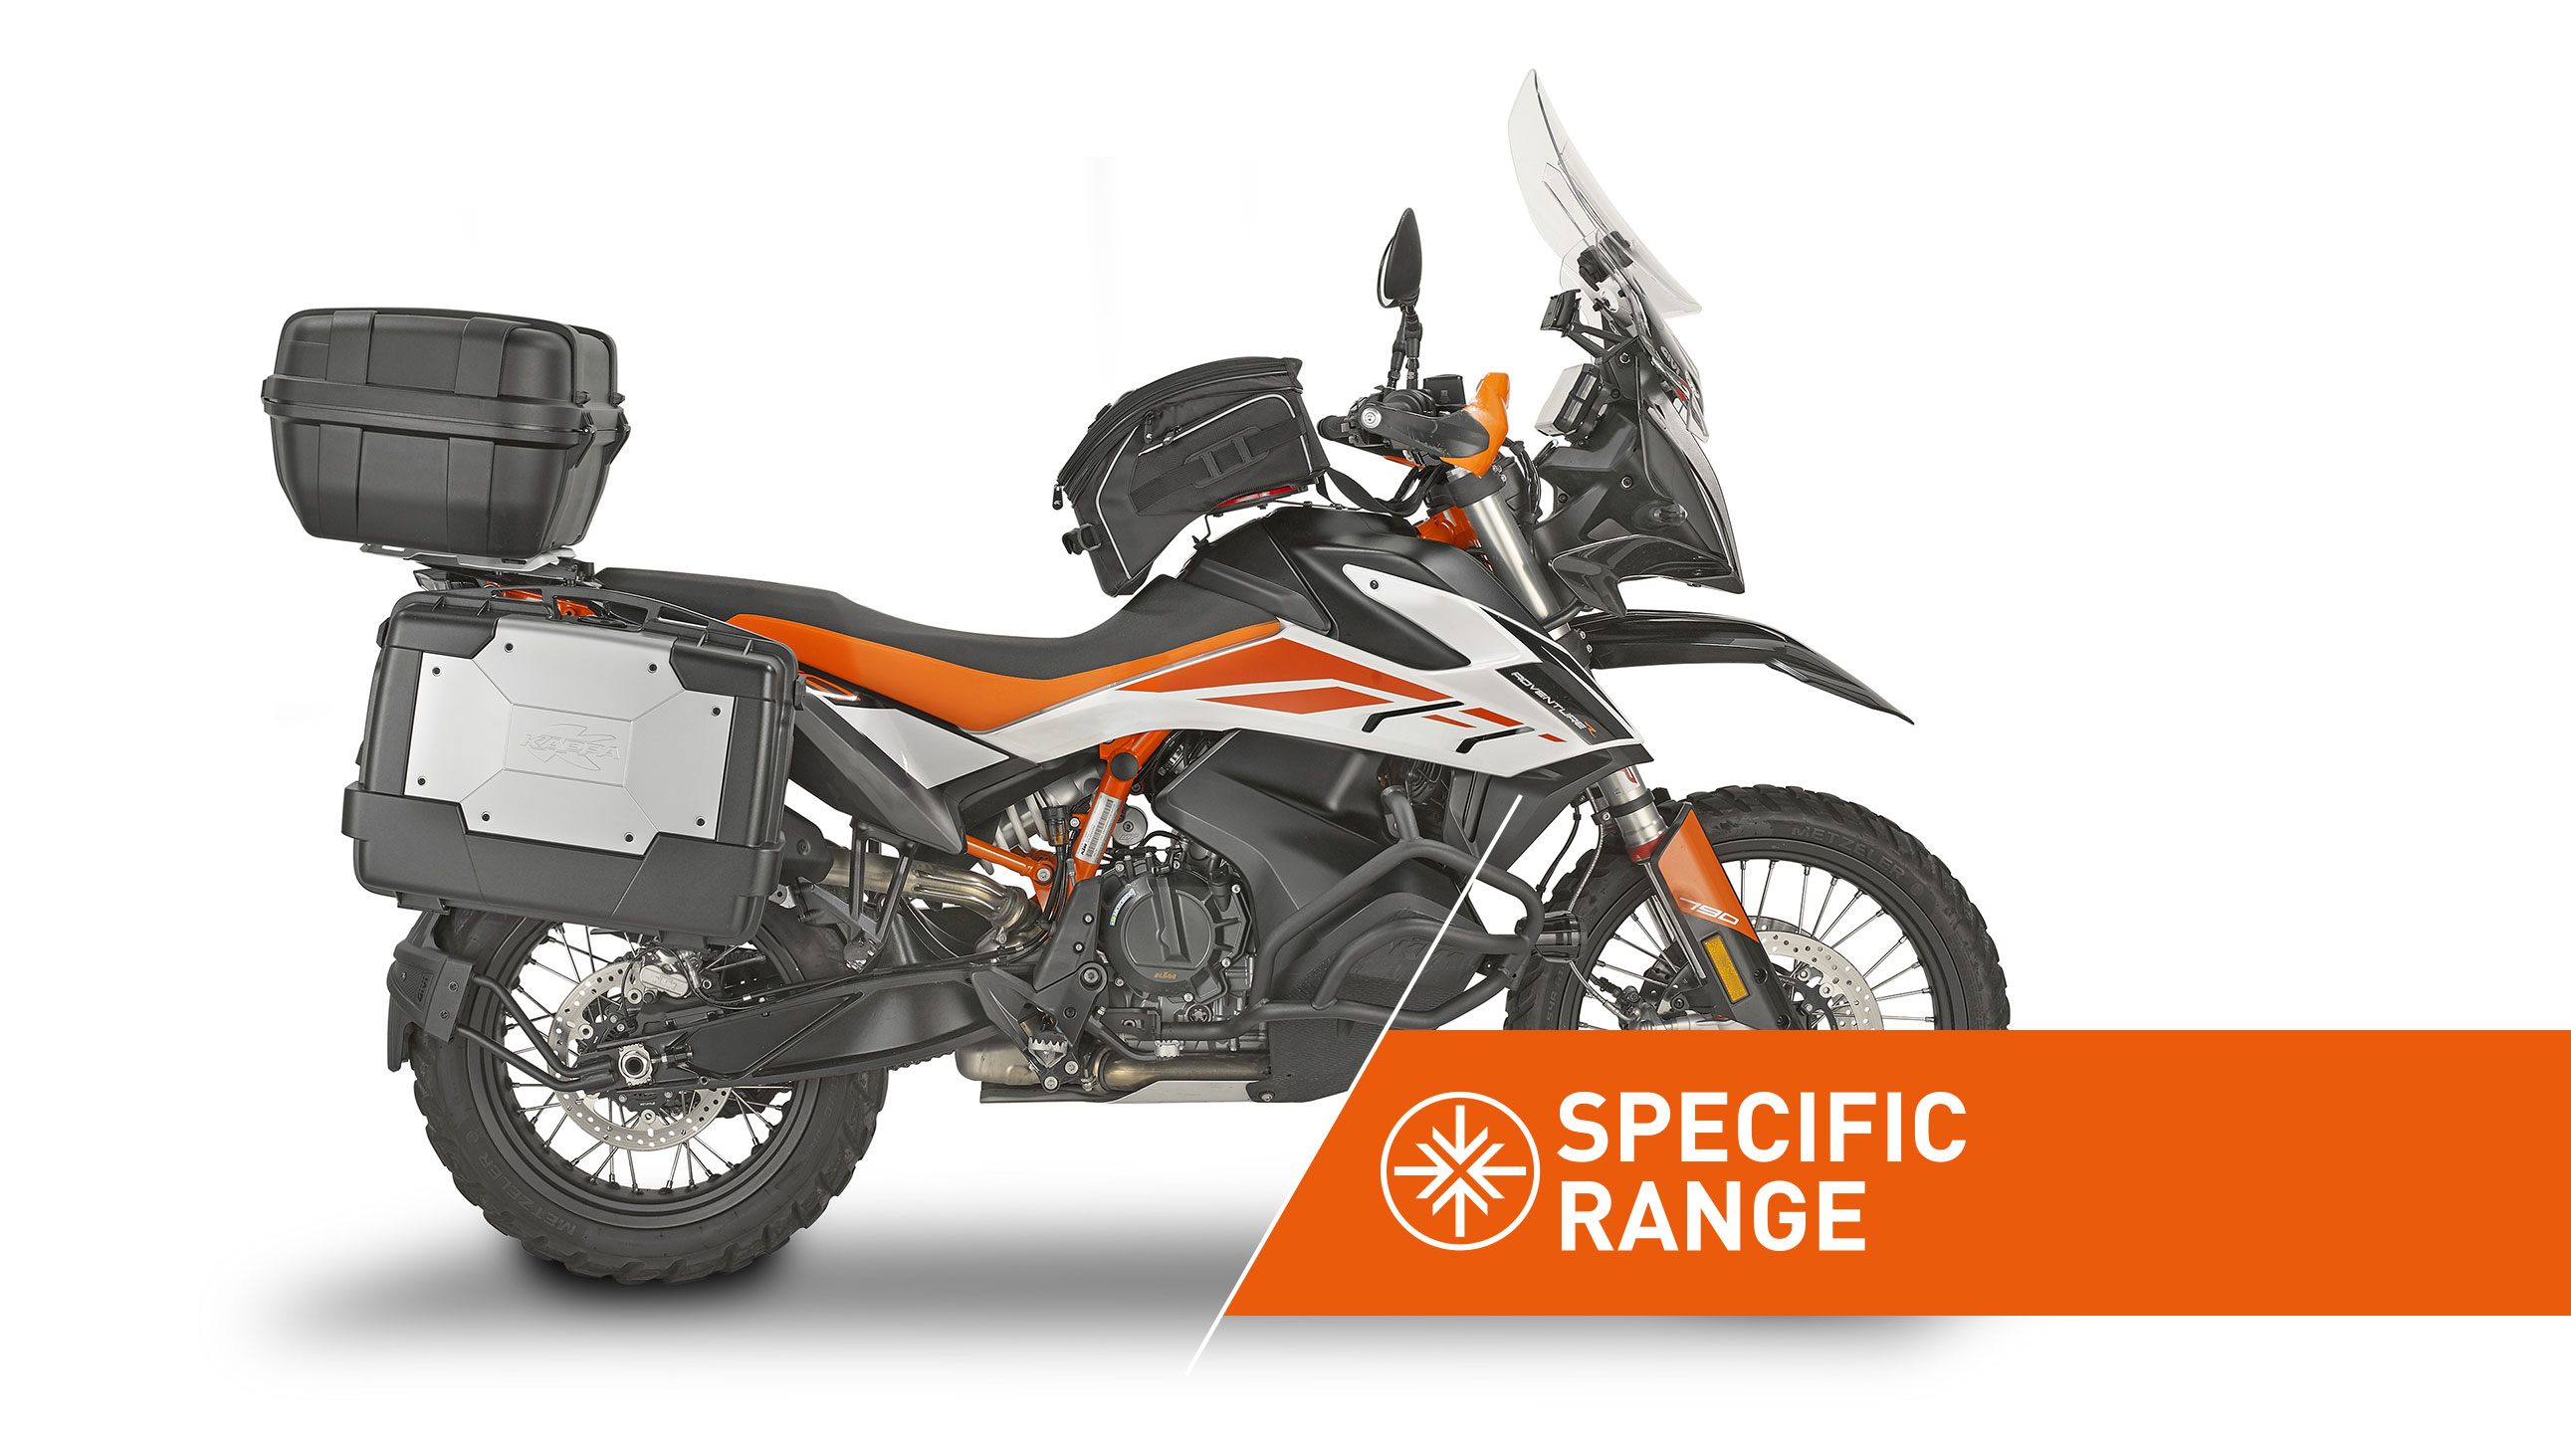 Linea Specifica di Accessori per KTM 790 ADVENTURE R (19) by KAPPA MOTO